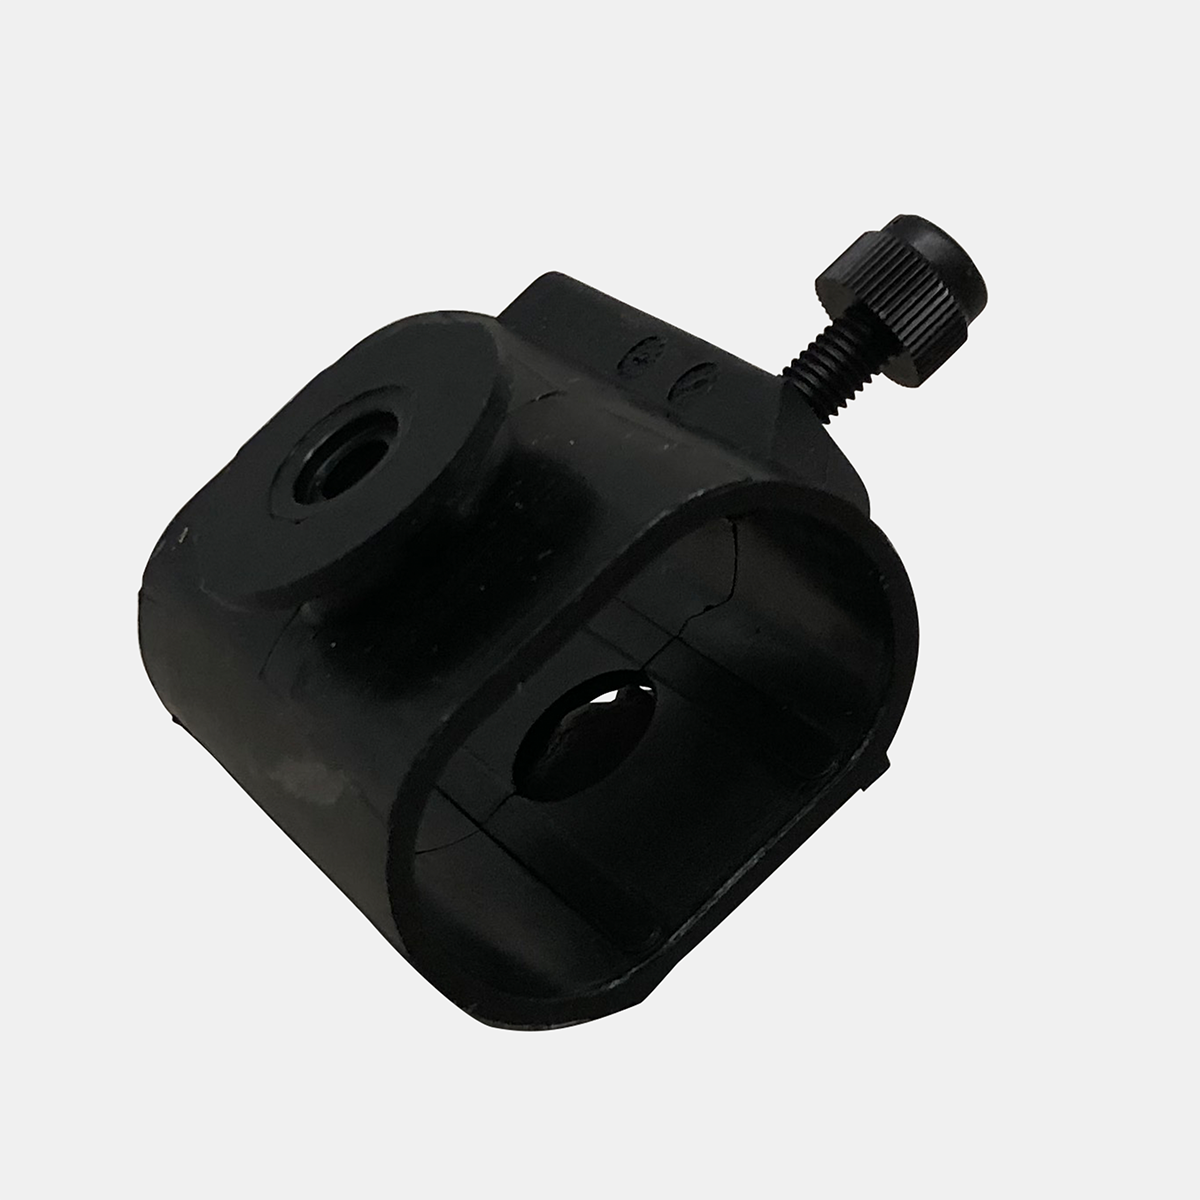 Changes to the Underwater Kinetics Torch Holder Clip